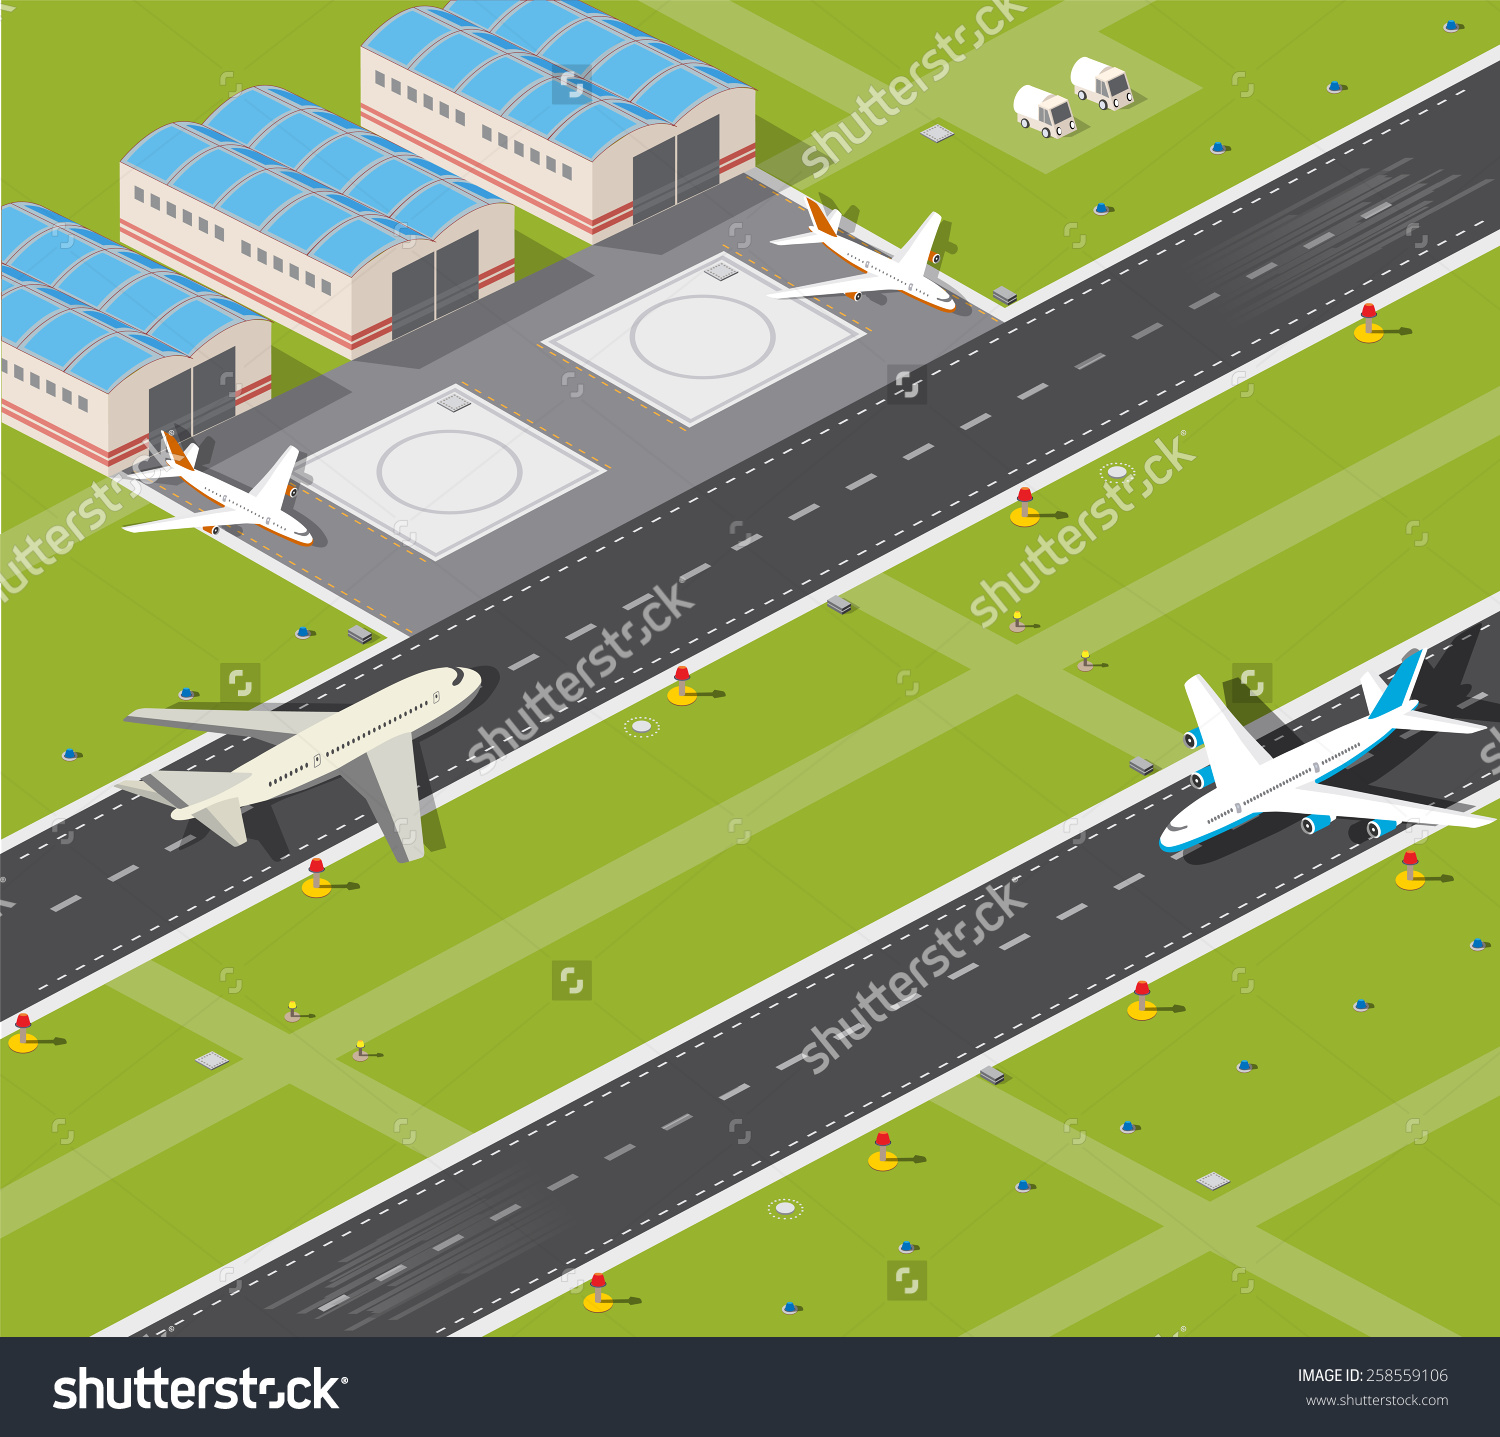 Airport clipart airport station. Runway